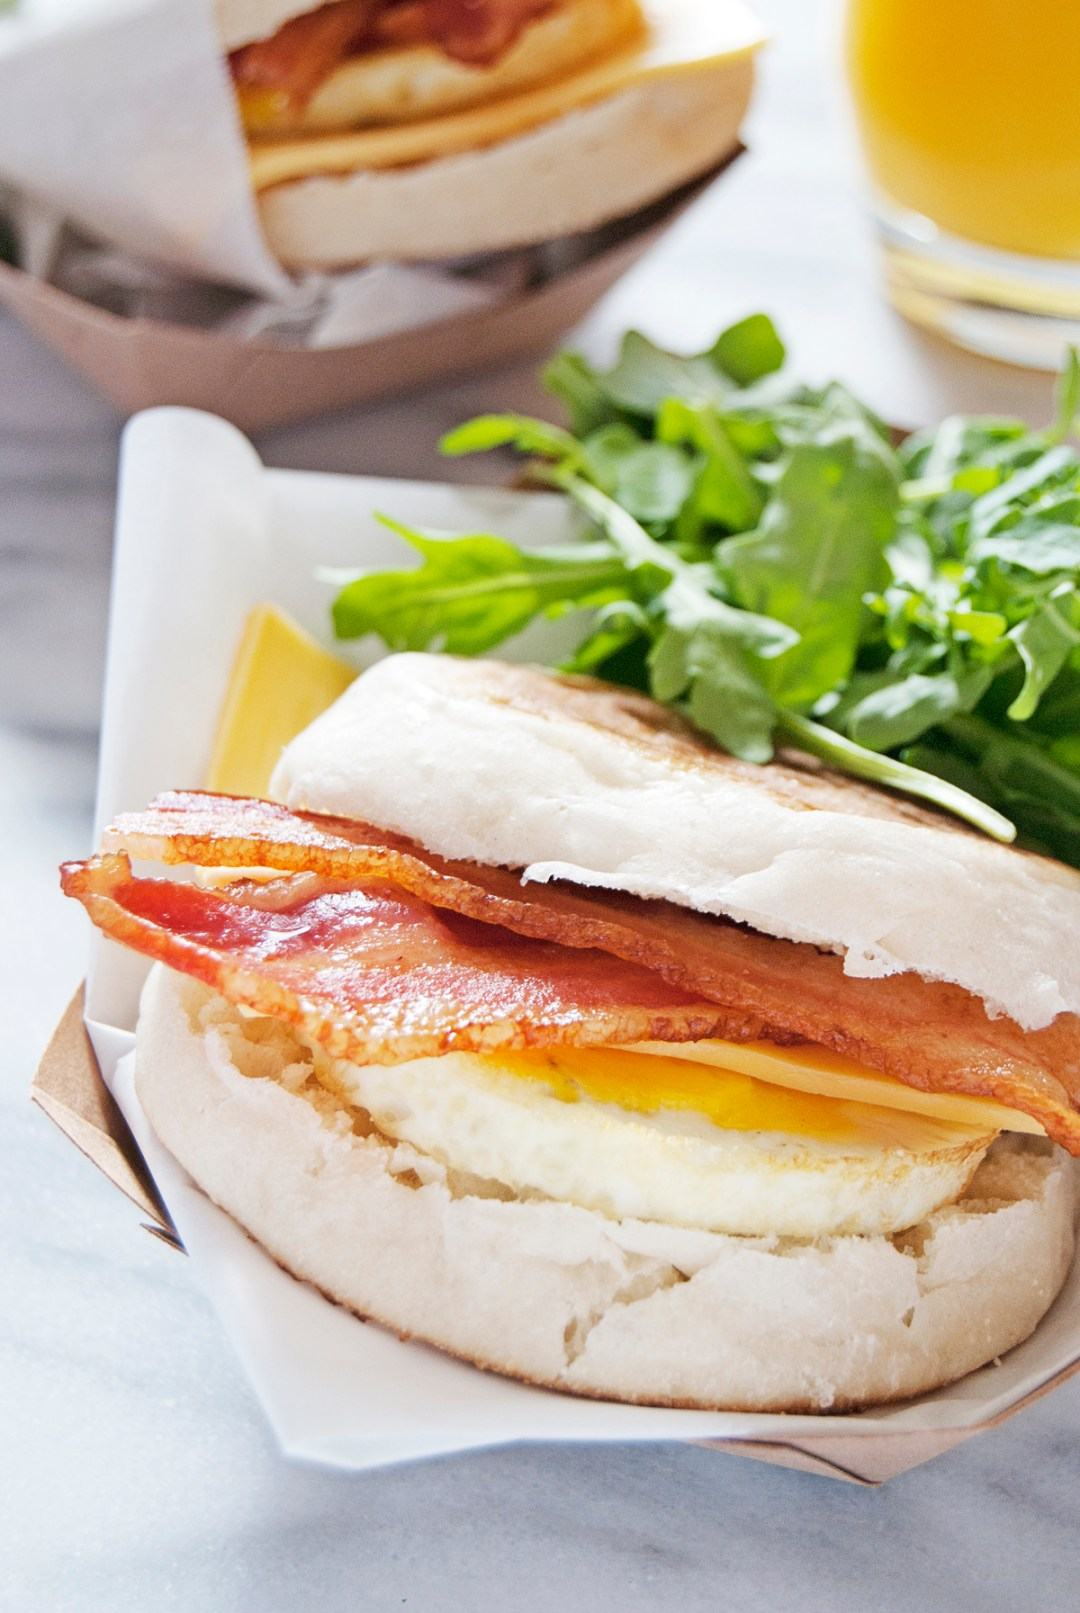 Make ahead breakfast sandwiches feature egg, bacon, and cheese on an English muffin and are the perfect protein-packed breakfast for on-the-go mornings!